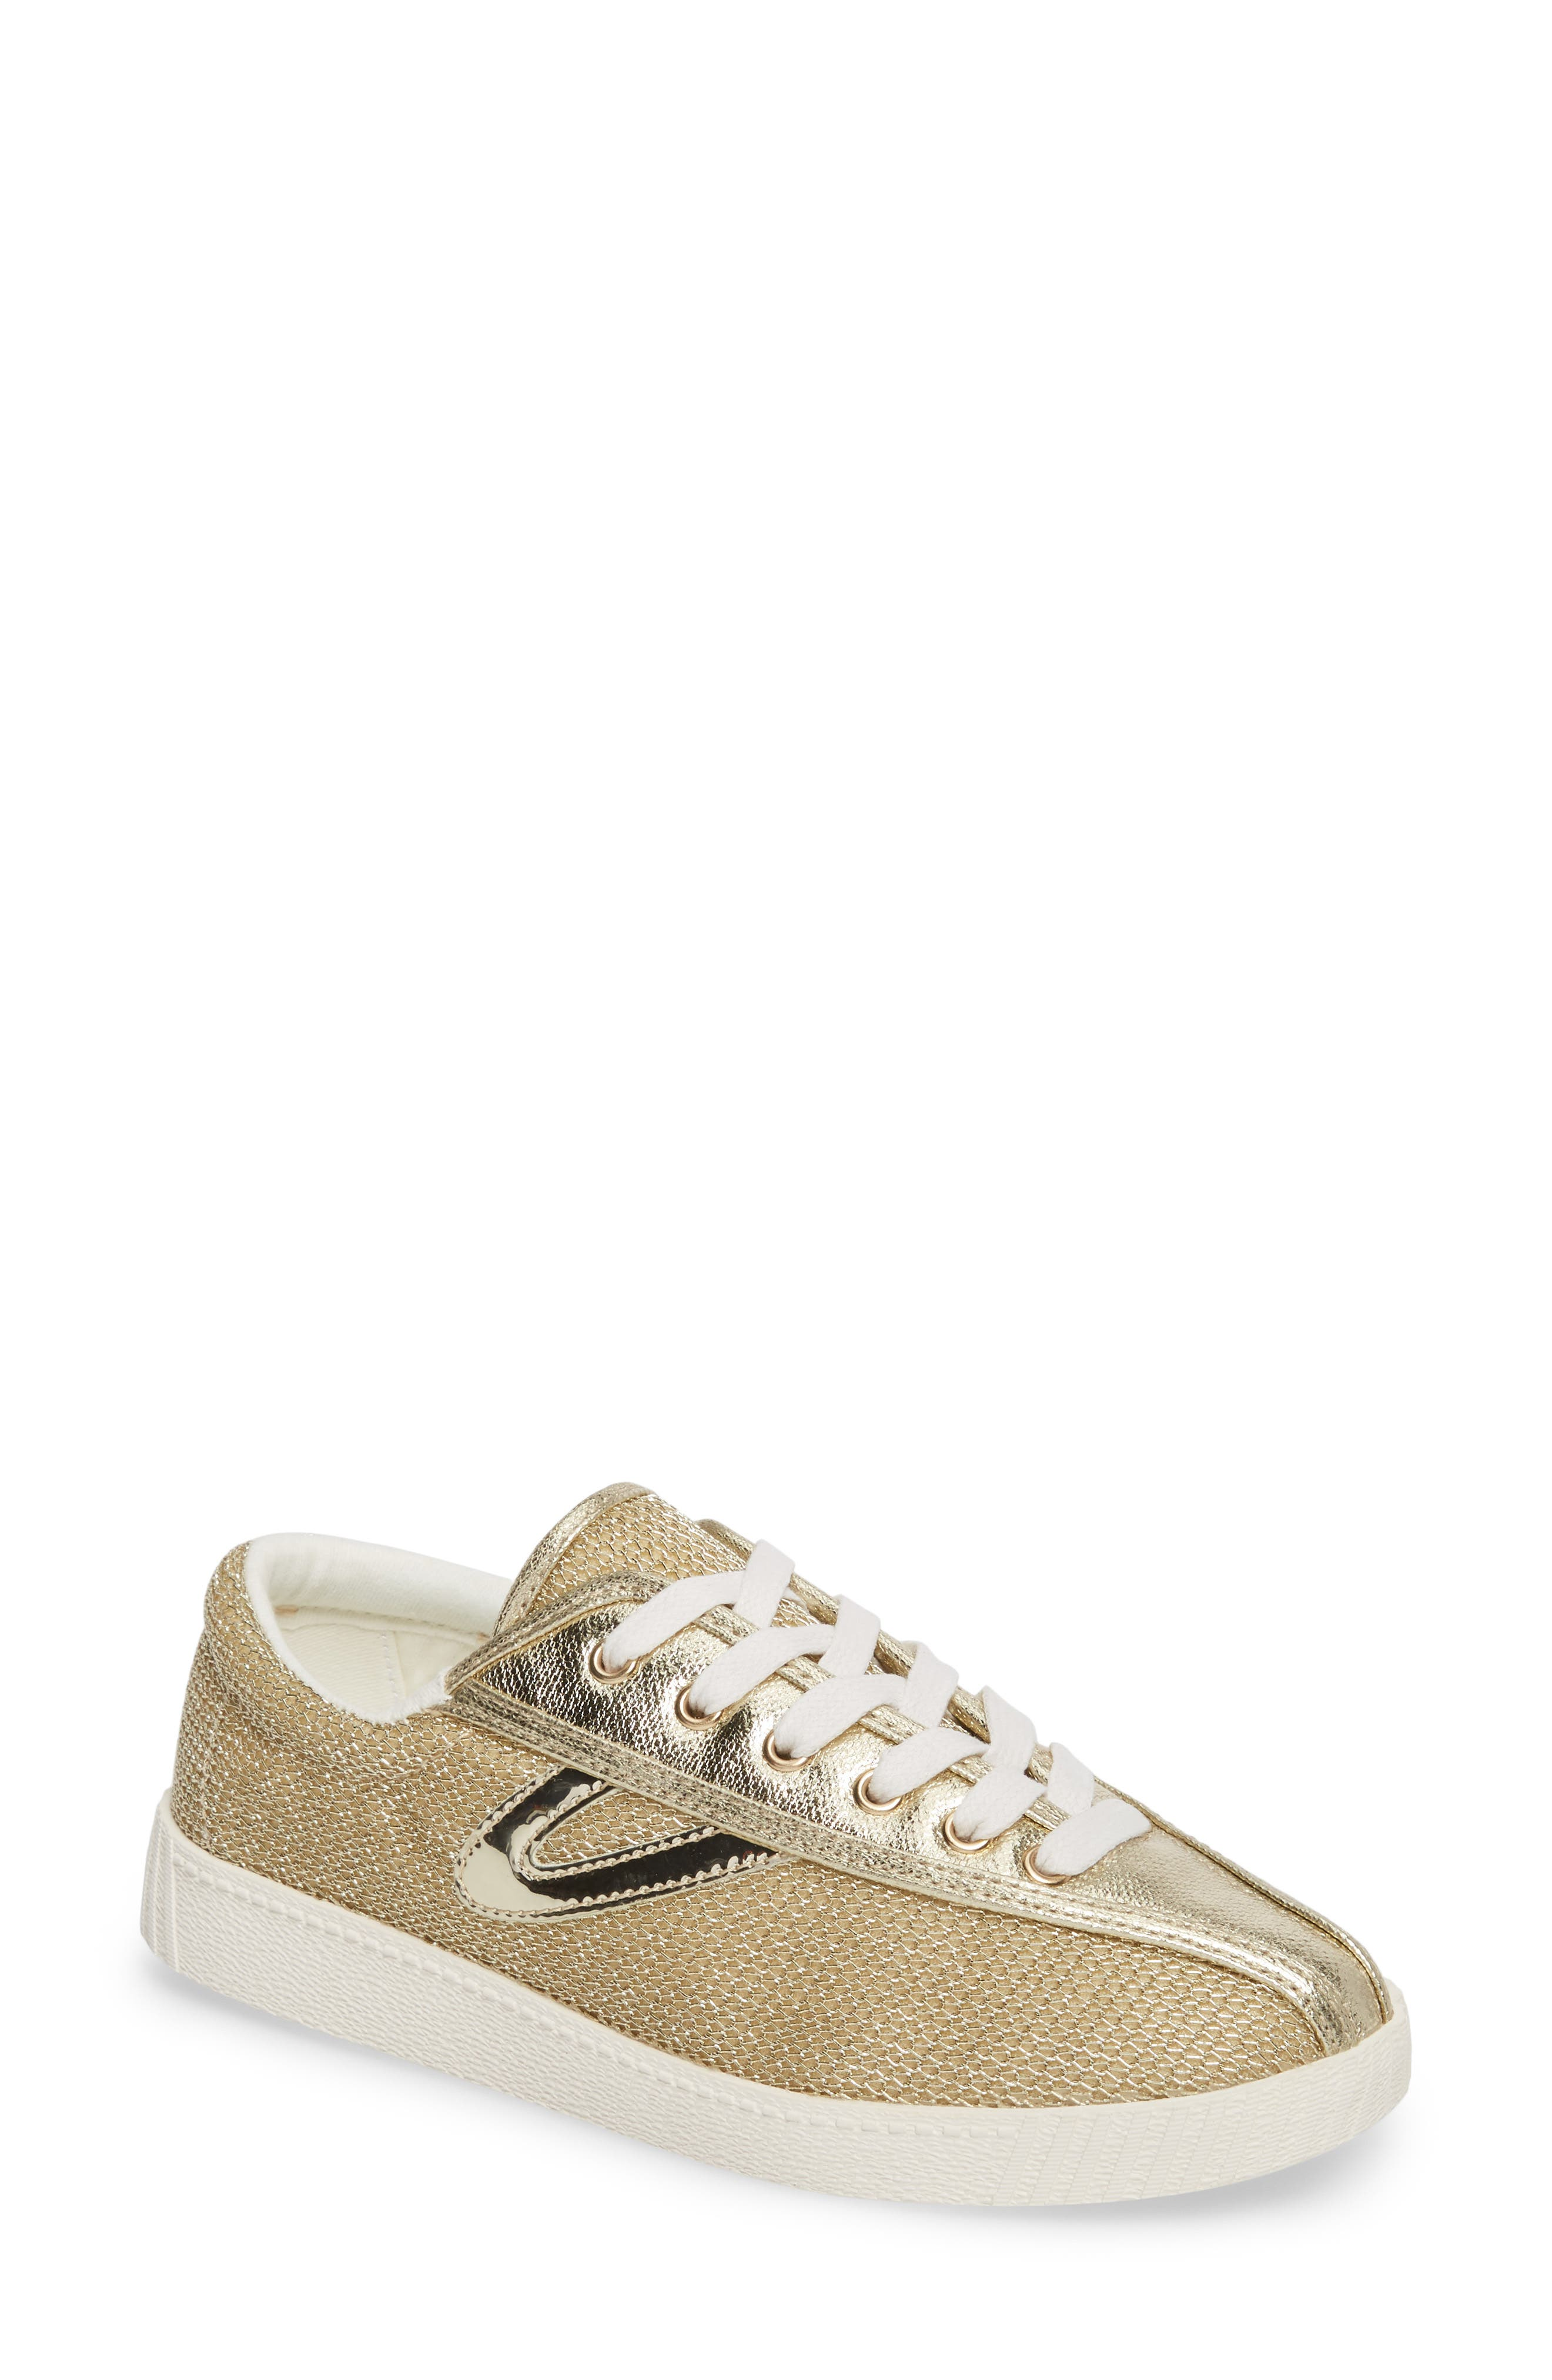 Alternate Image 1 Selected - Tretorn Nylite Plus Sneaker (Women)